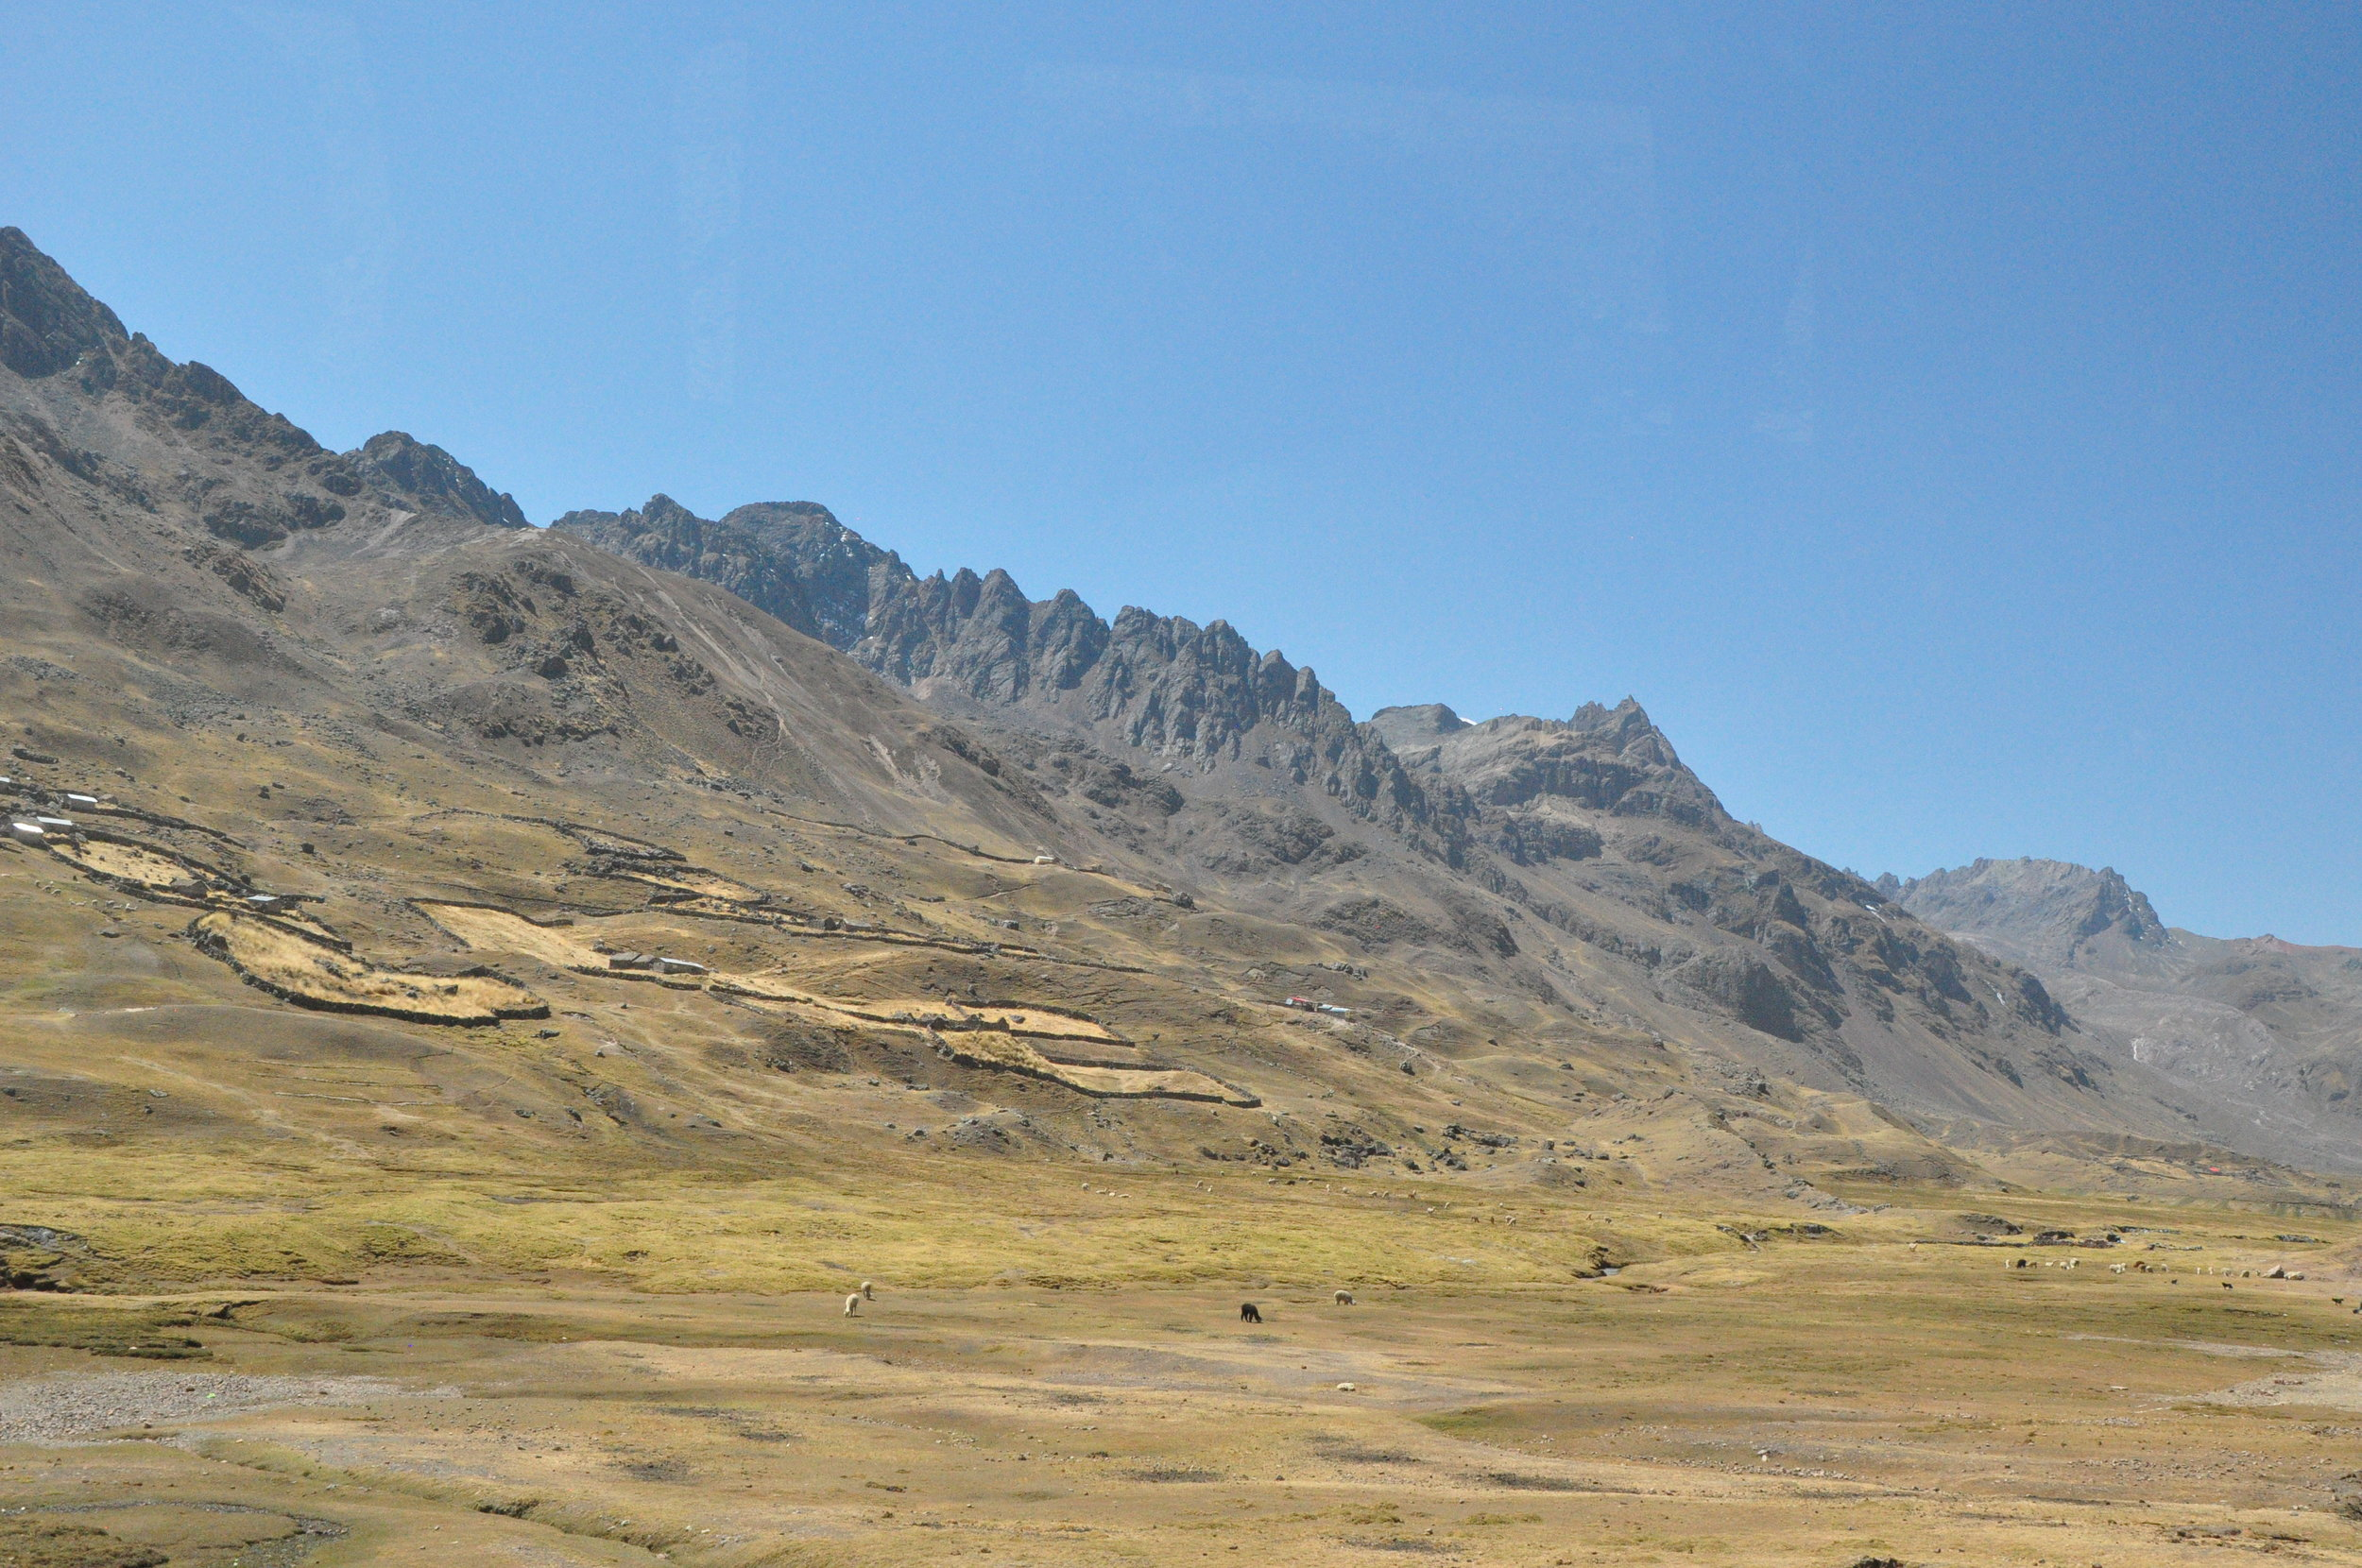 Driving down the mountain.  The fenced areas are for alpacas.